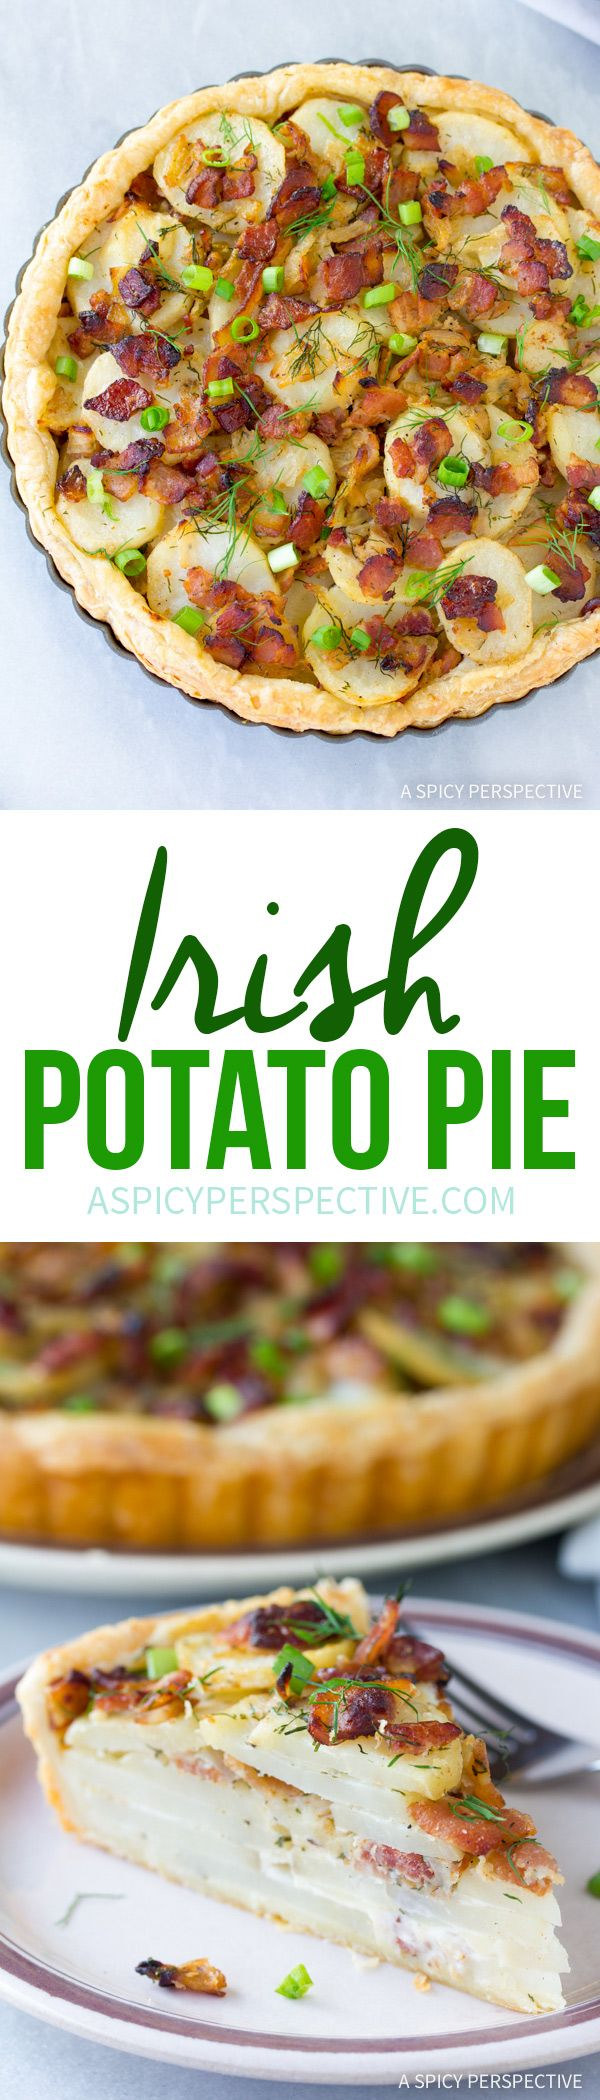 Tantalizing Irish Potato Pie Recipe #saintpatricksday via @spicyperspectiv